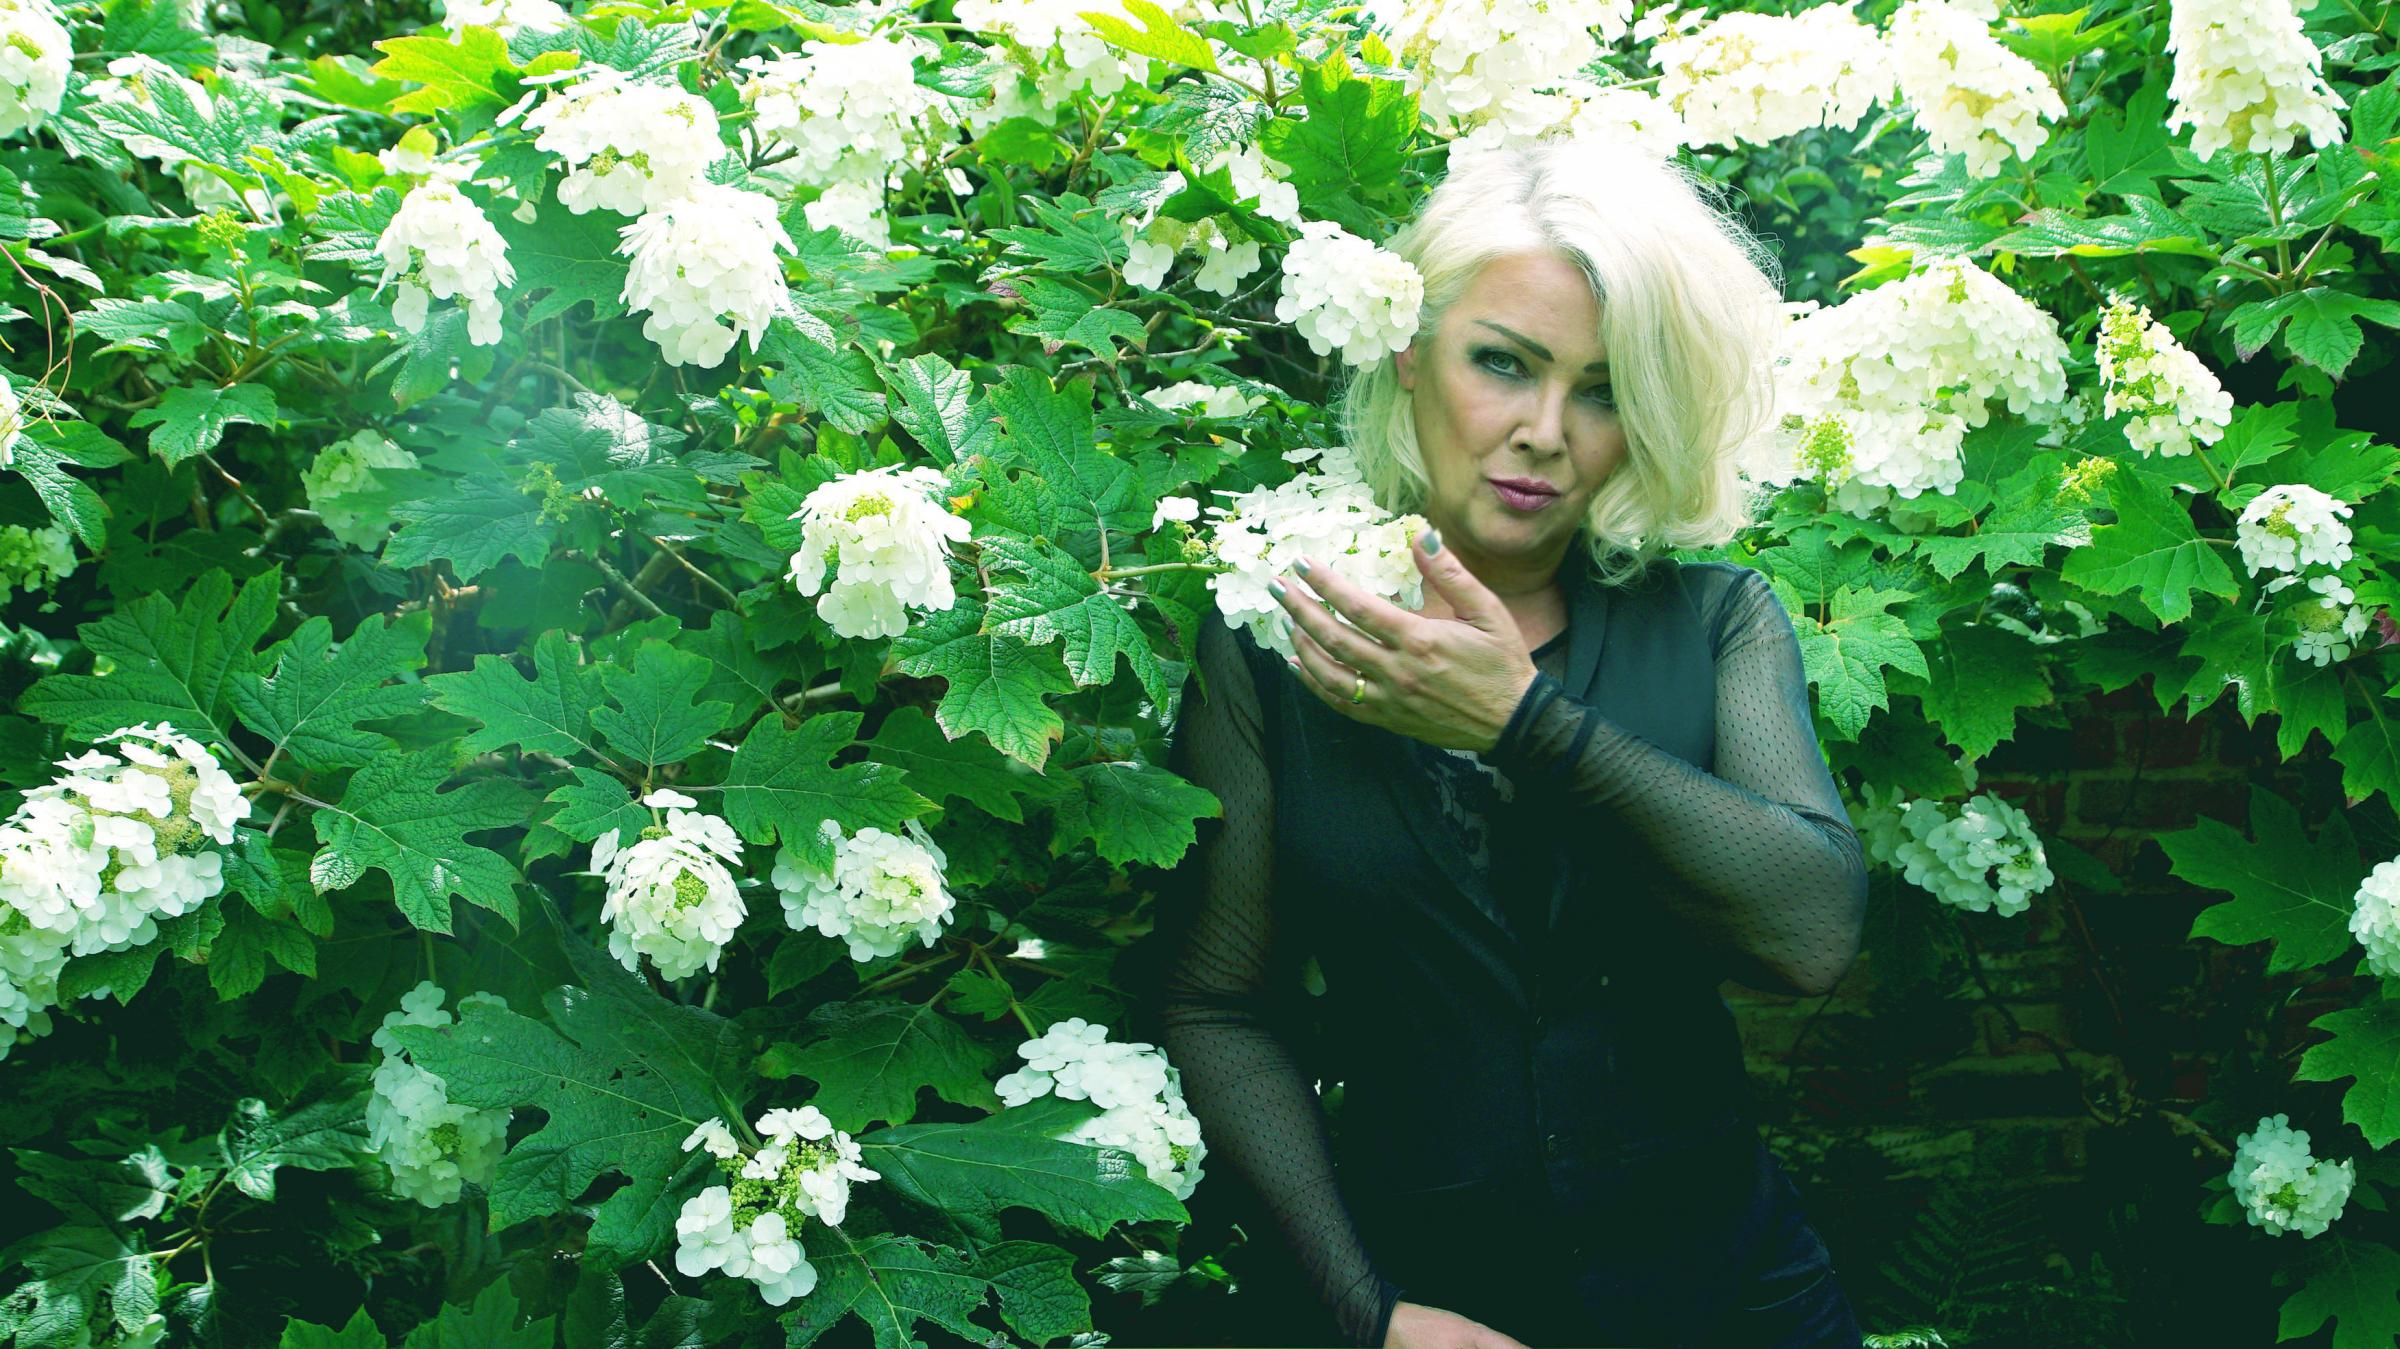 80s pop star brings decade-defining hits to Dorset